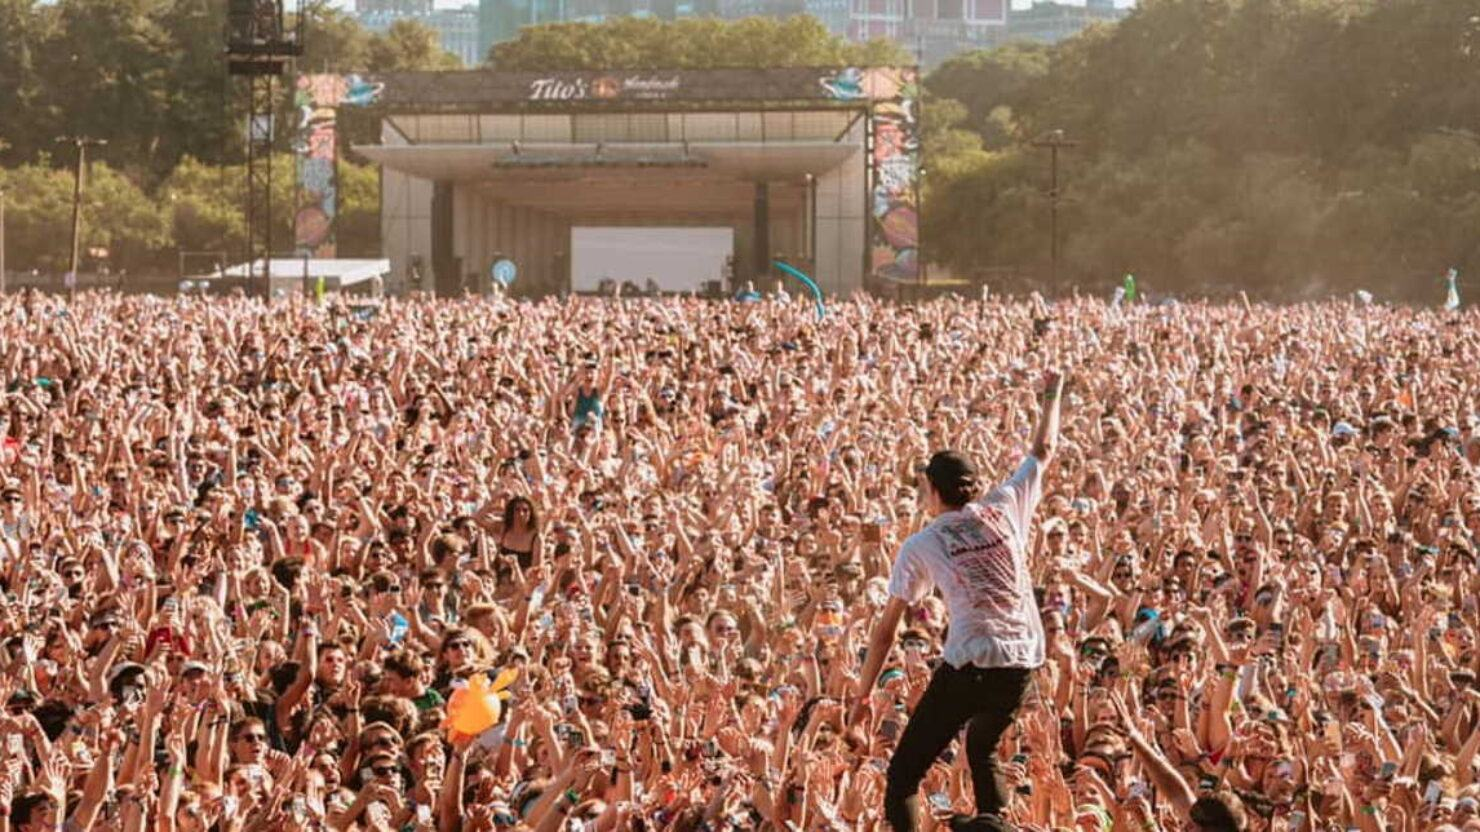 Lollapalooza Chicago 2021: Foo Fighters, Post Malone, Miley Cyrus & More